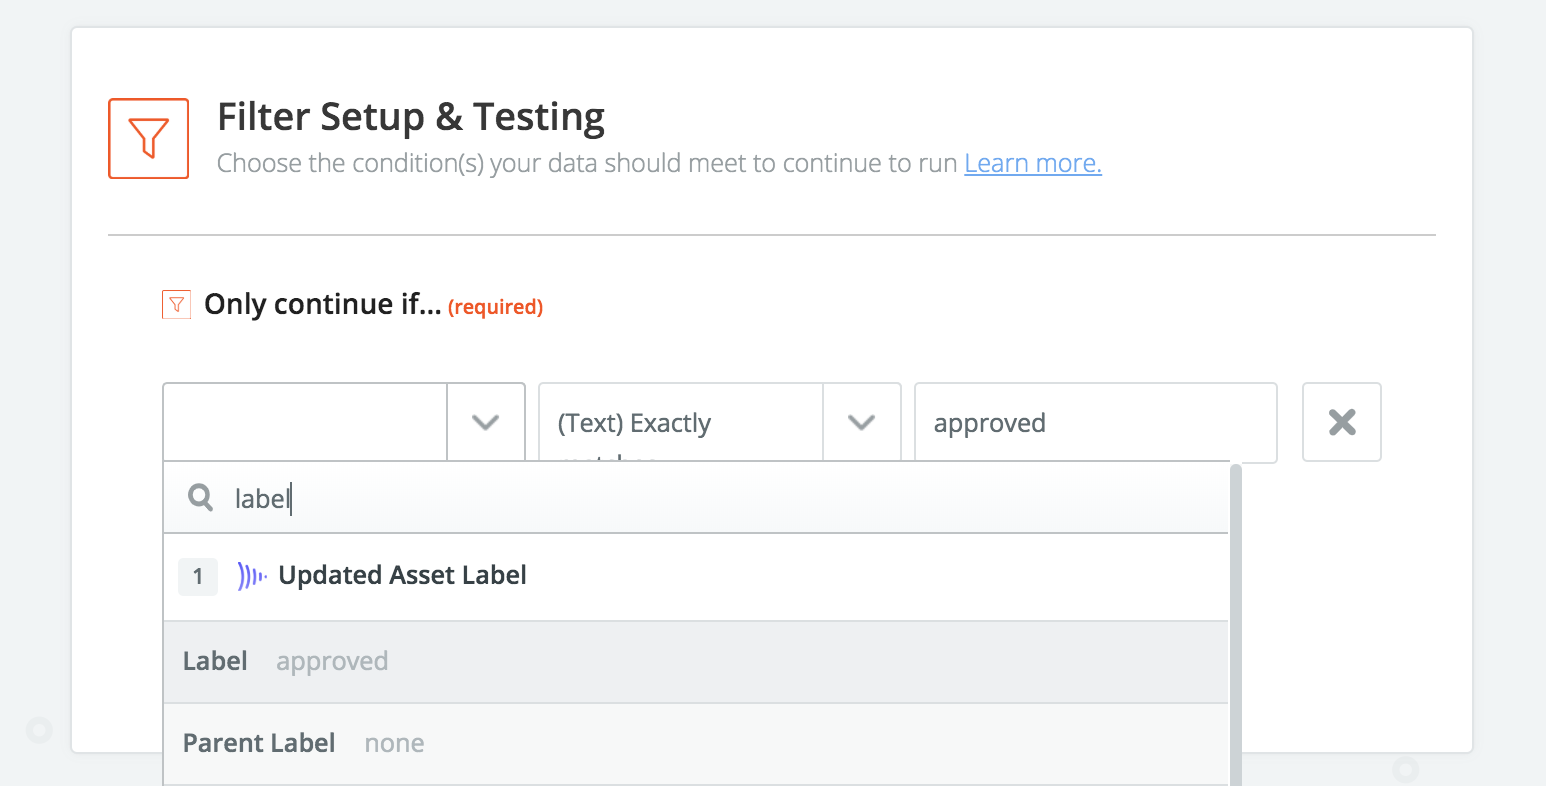 Quick-search for asset approved